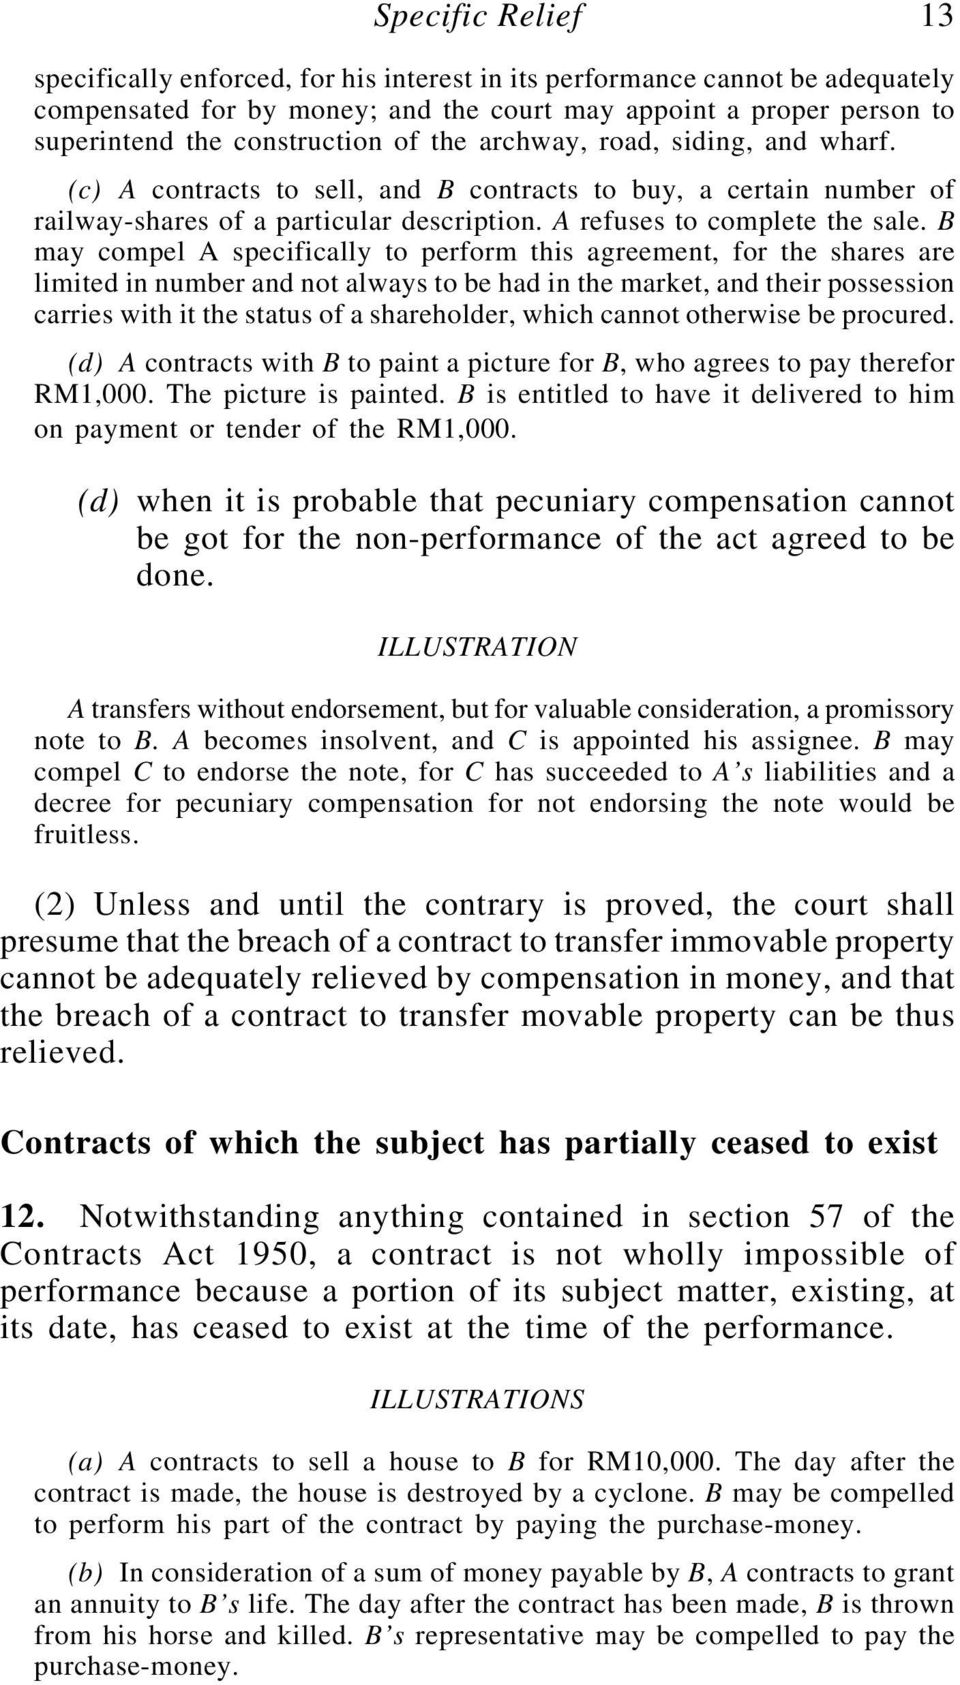 B may compel A specifically to perform this agreement, for the shares are limited in number and not always to be had in the market, and their possession carries with it the status of a shareholder,